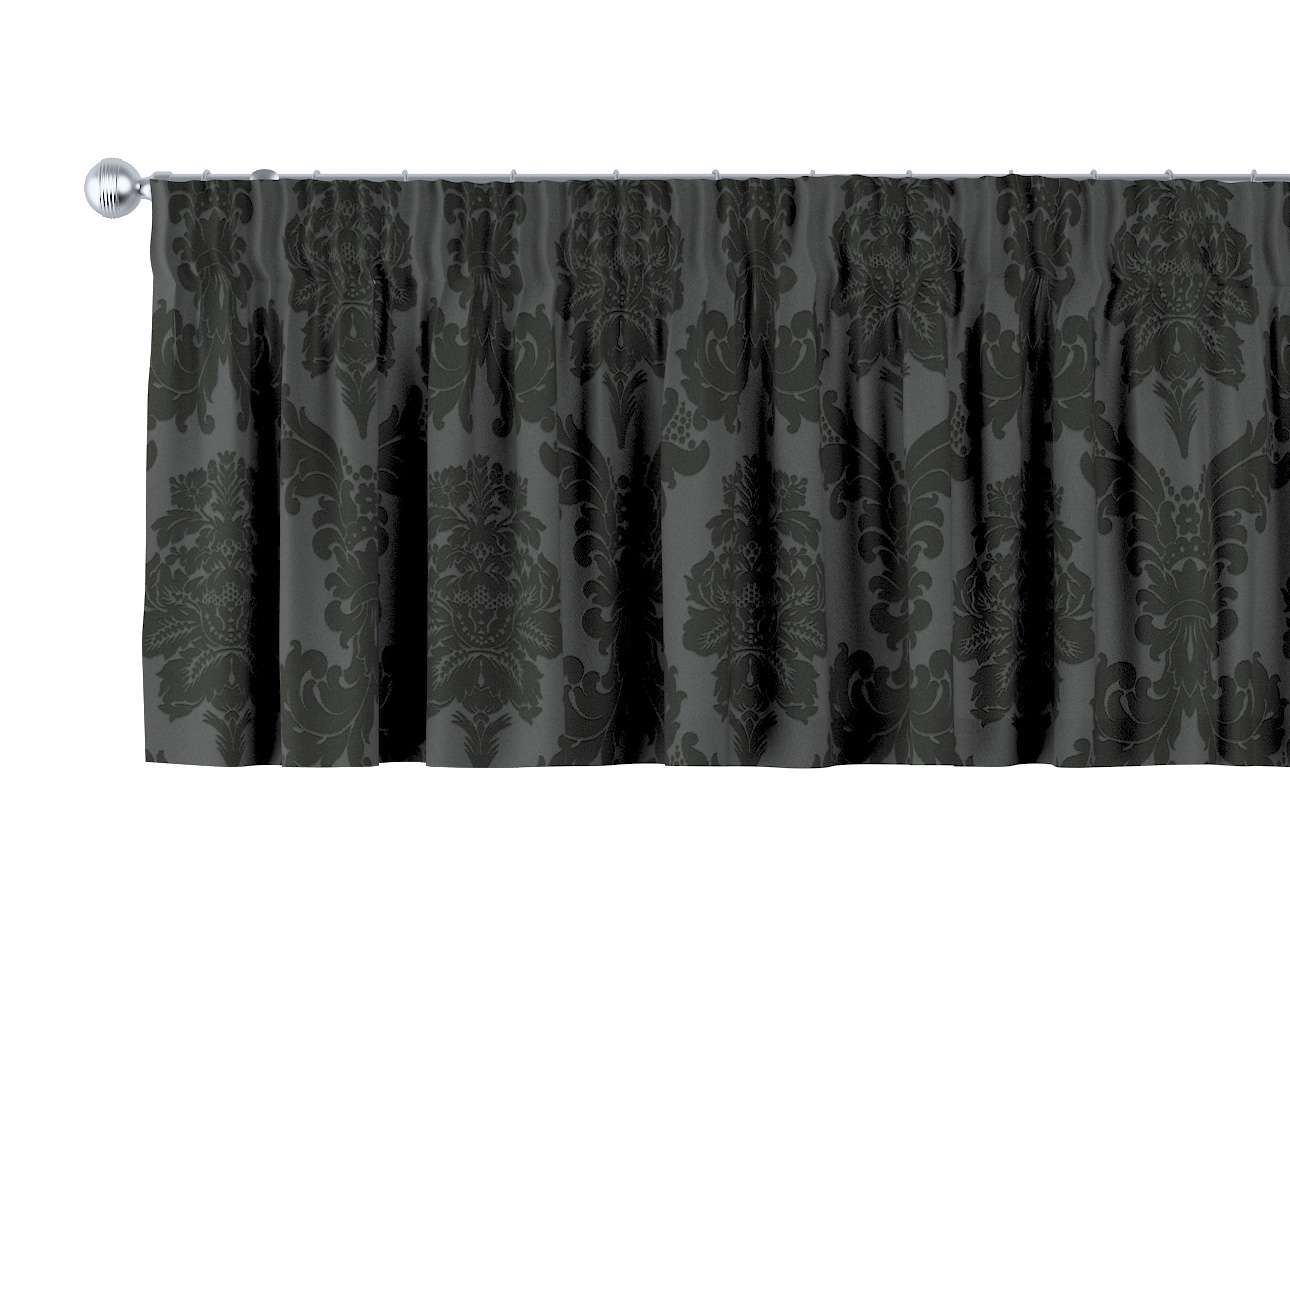 Pencil pleat pelmet 130 × 40 cm (51 × 16 inch) in collection Damasco, fabric: 613-32